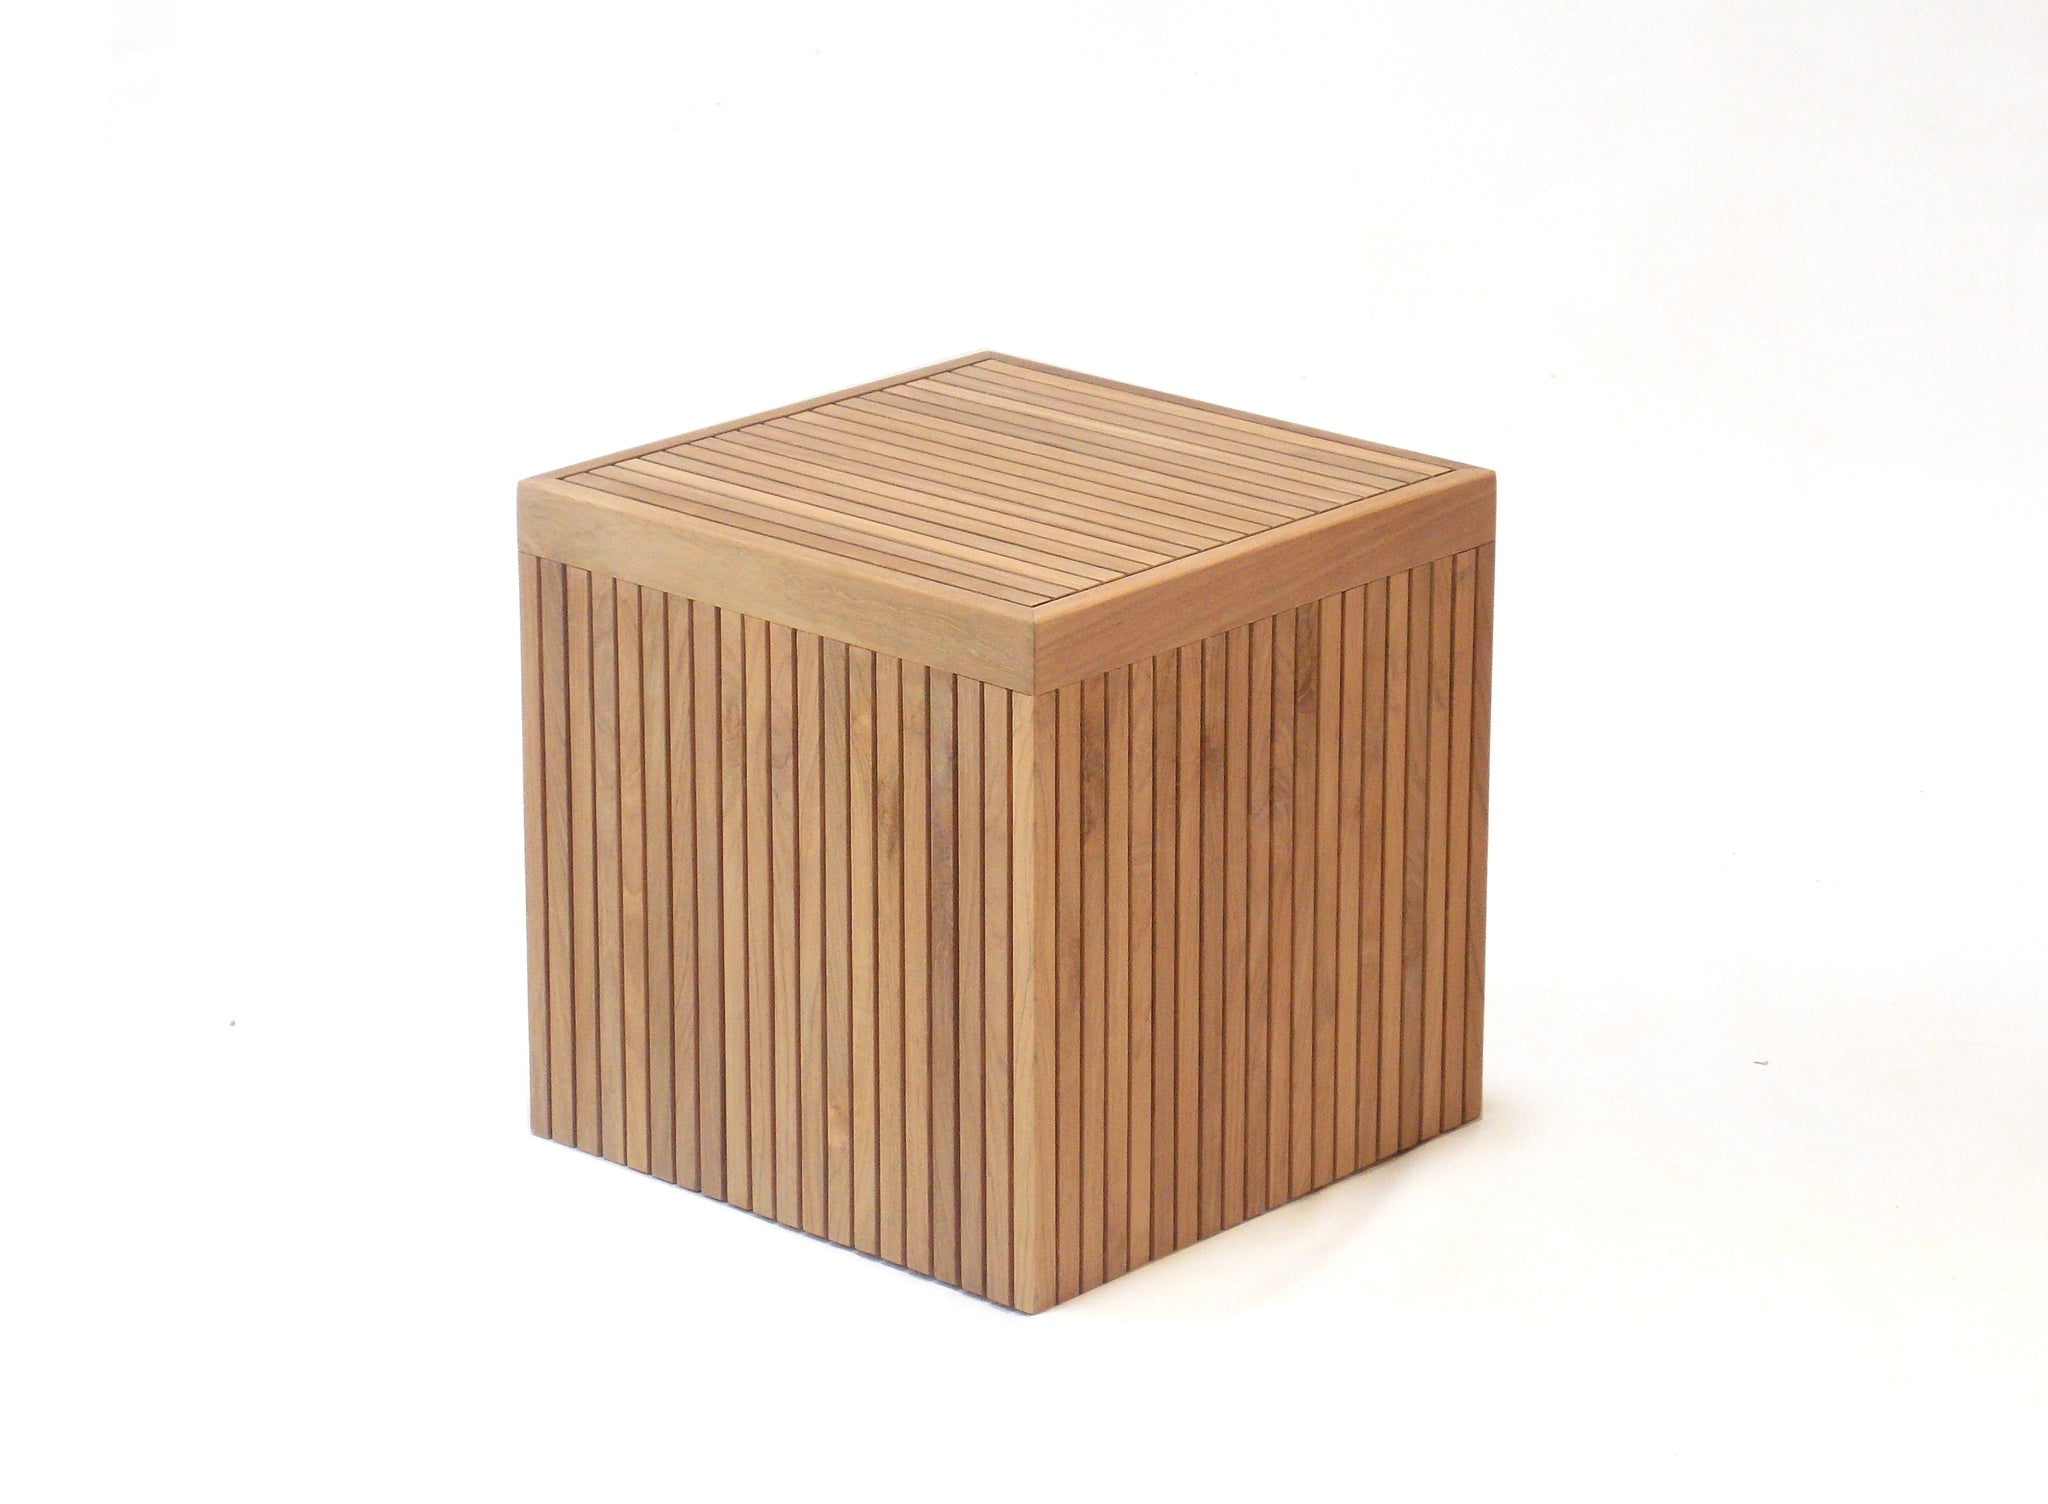 Mayfair Teak Stool